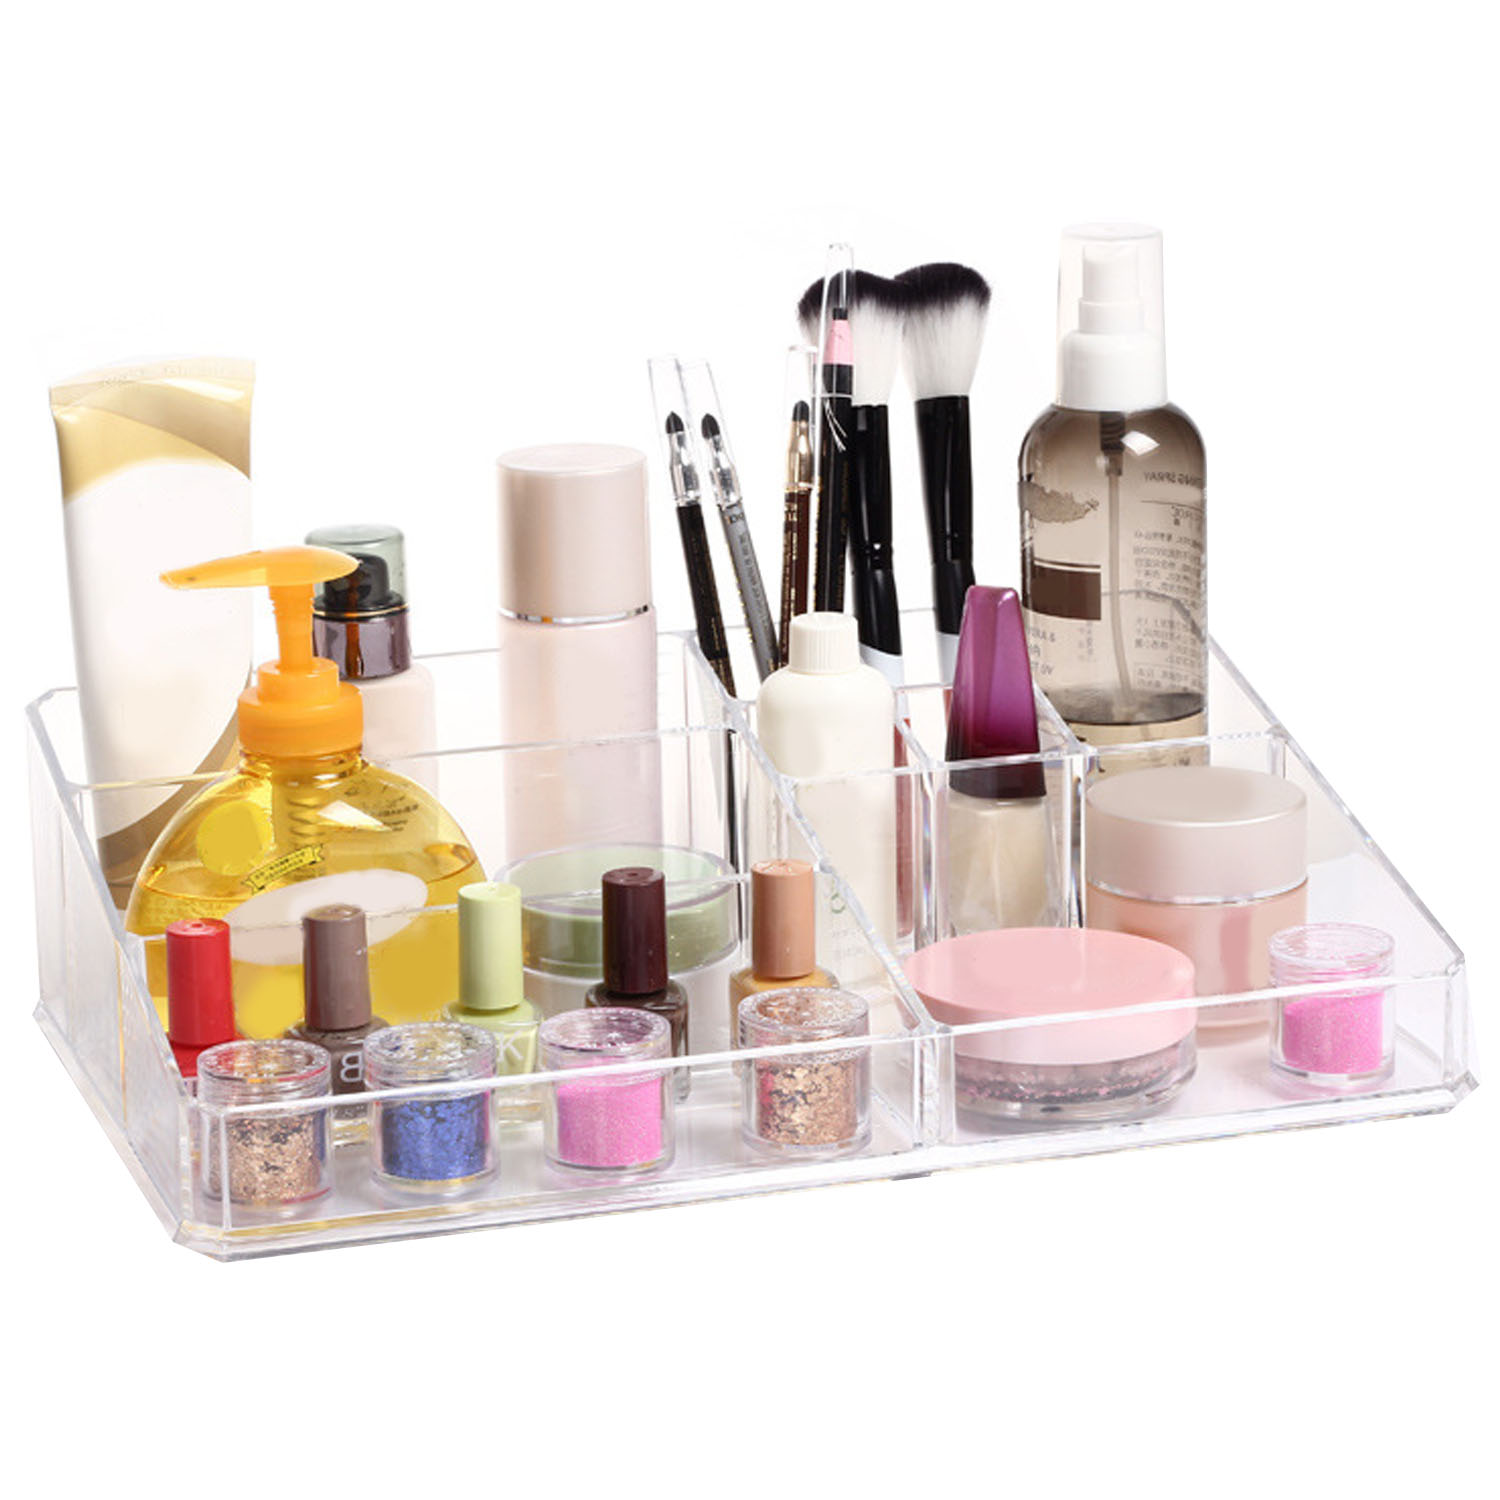 NC Clear Cosmetic Makeup Storage Display Organizer Box Lipstick Holder Stand Make up Brush Eyeshadow Nail Polish Case Container